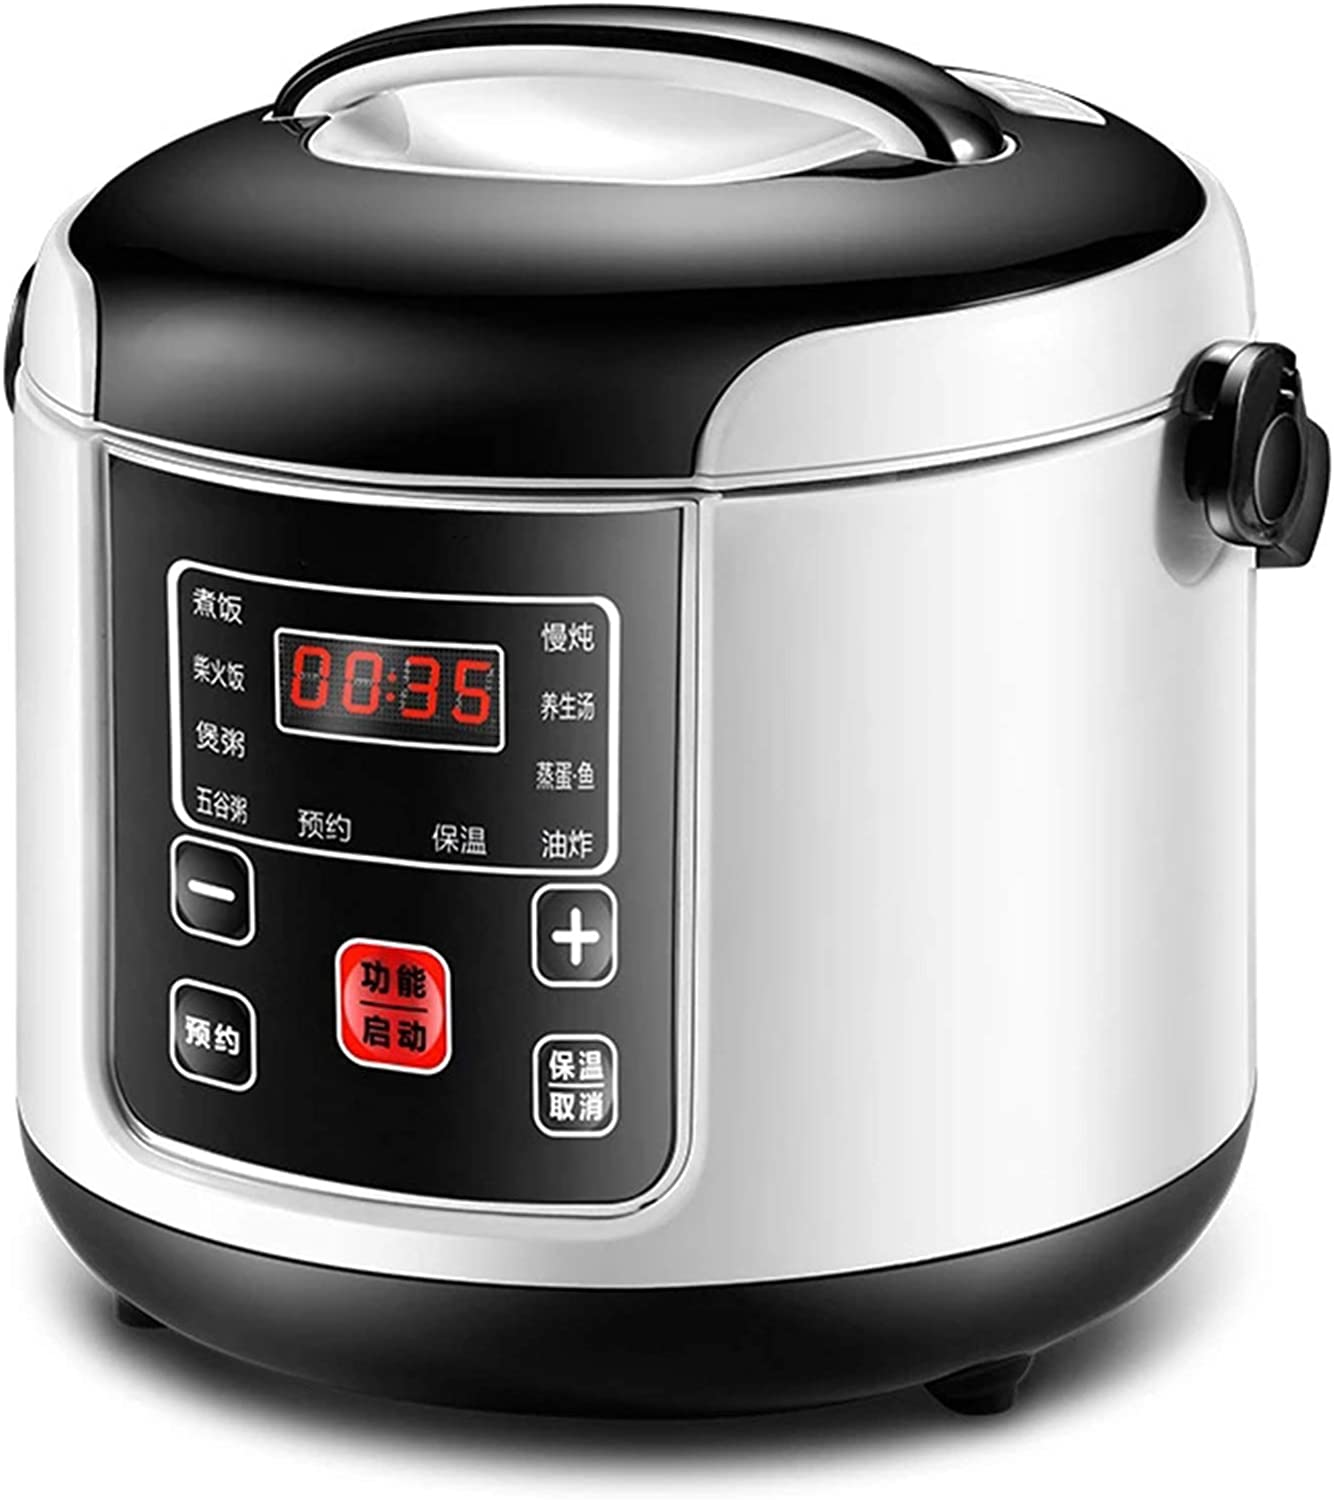 Amazon.com: Smart Electric Rice Cooker Intelligent Automatic Household  Kitchen Cooker 3-5 People Portable Preservation Electric Rice Cookers,  Black: Kitchen & Dining